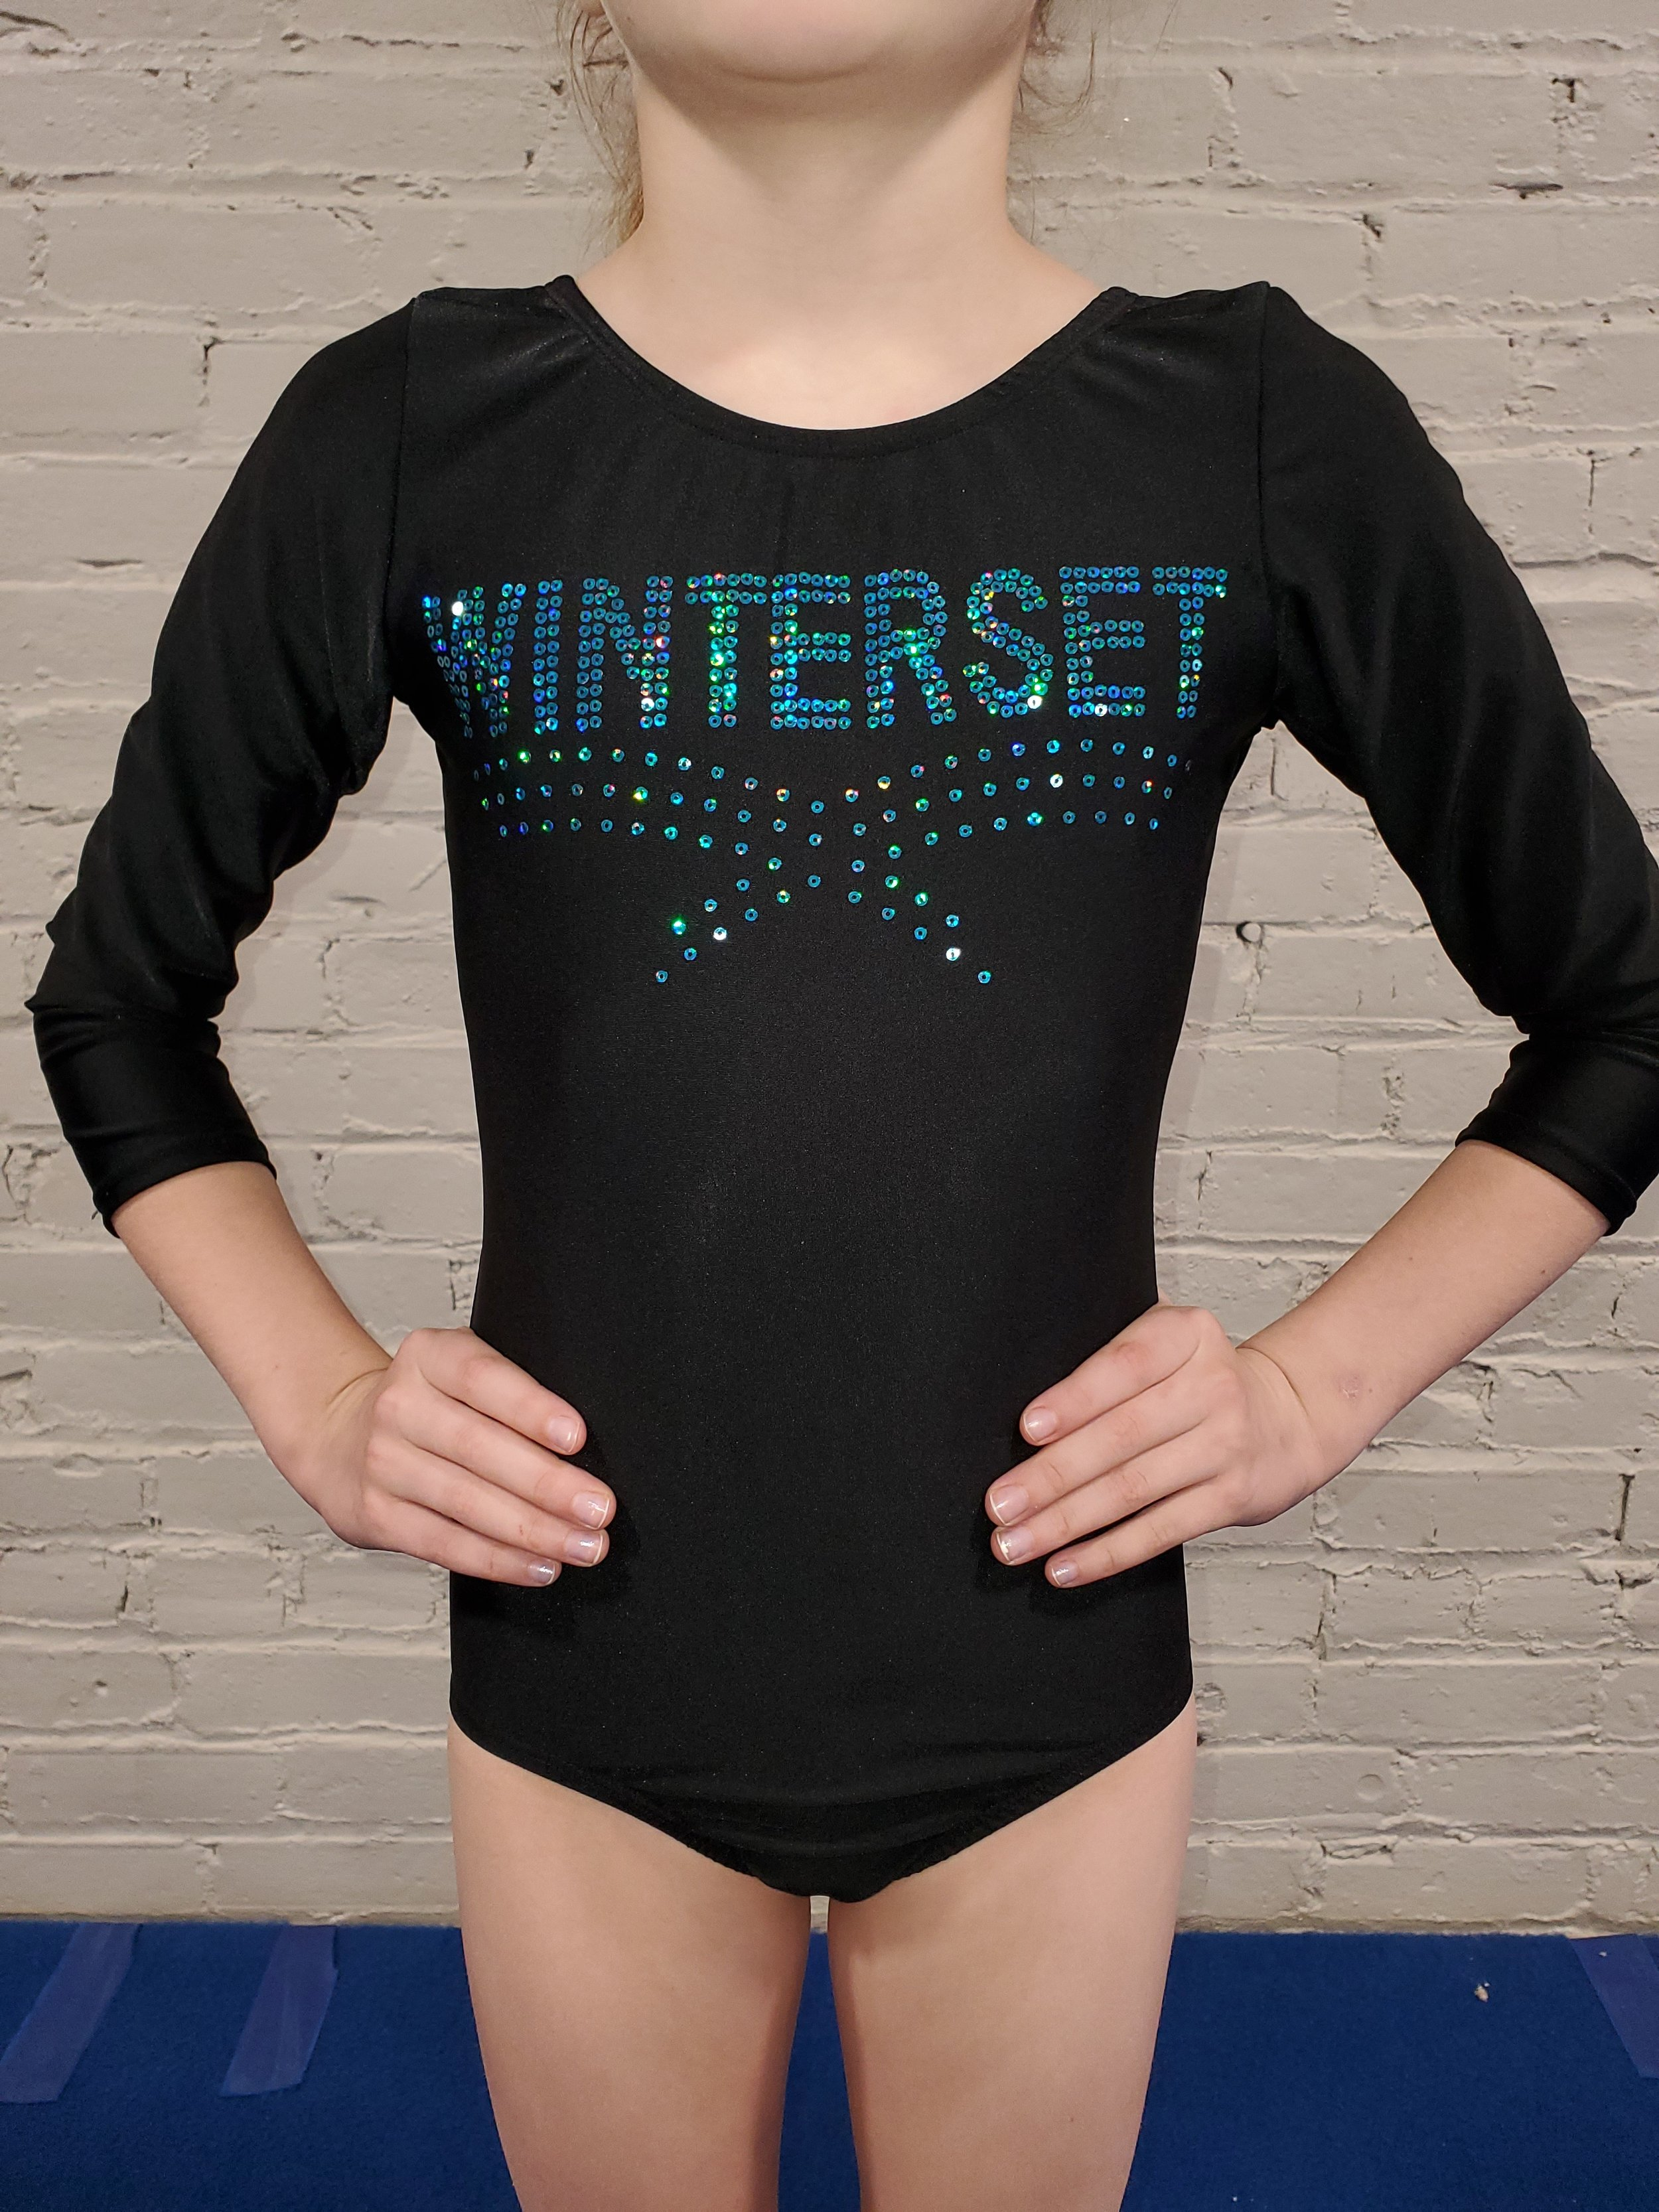 3/4 SLEEVE COMPETITION LEOTARD - $55    BLACK COMPETITION SHORTS (optional, not shown in picture) $20  are now permitted for competitions. Suggested but not required for all ages and levels.